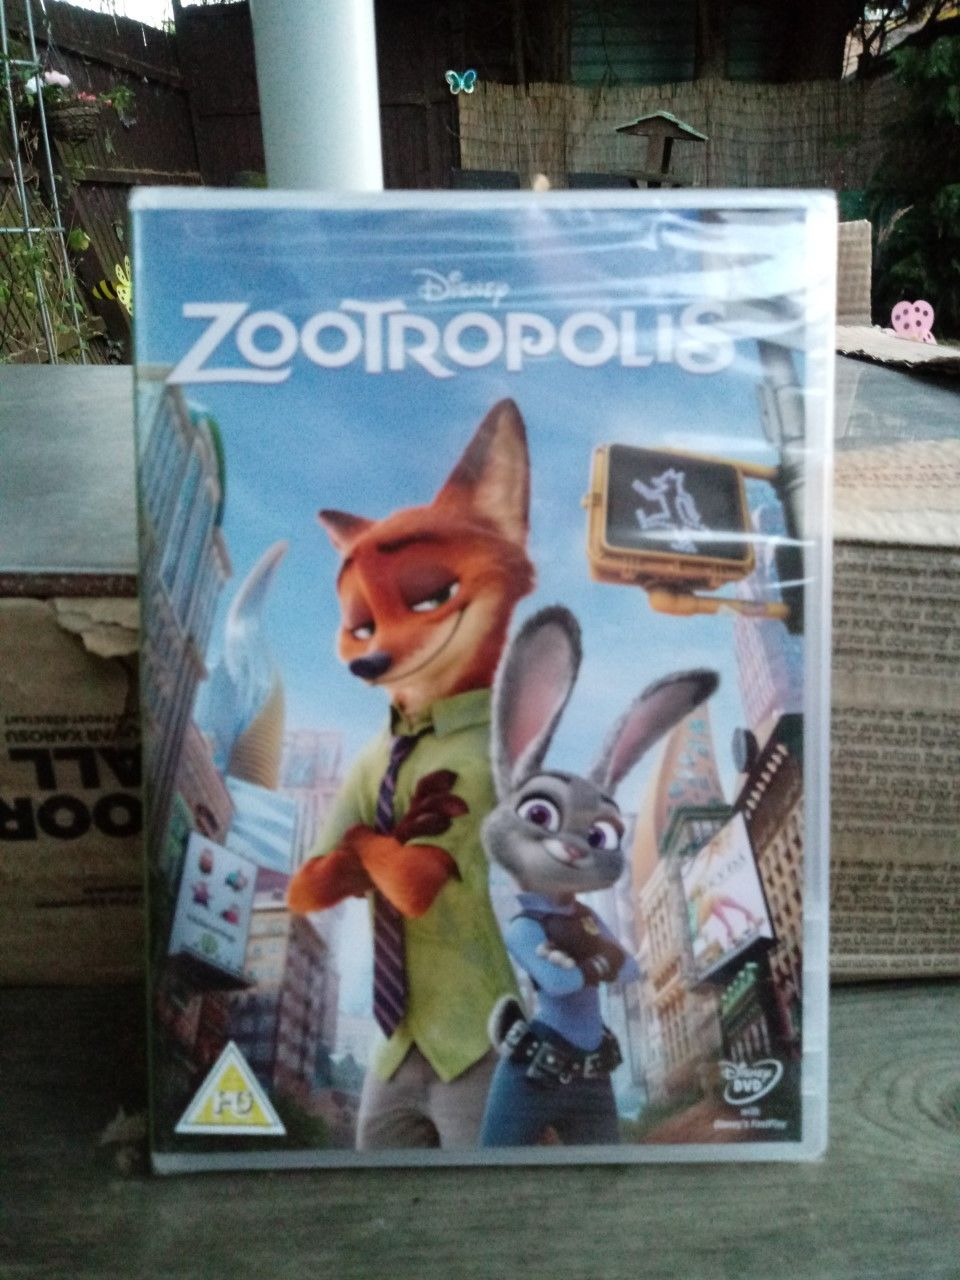 Disney World World Zootropolis DVD.space 2 uk/europe Newest and sealed.least costly on Brand new Finish Consumer